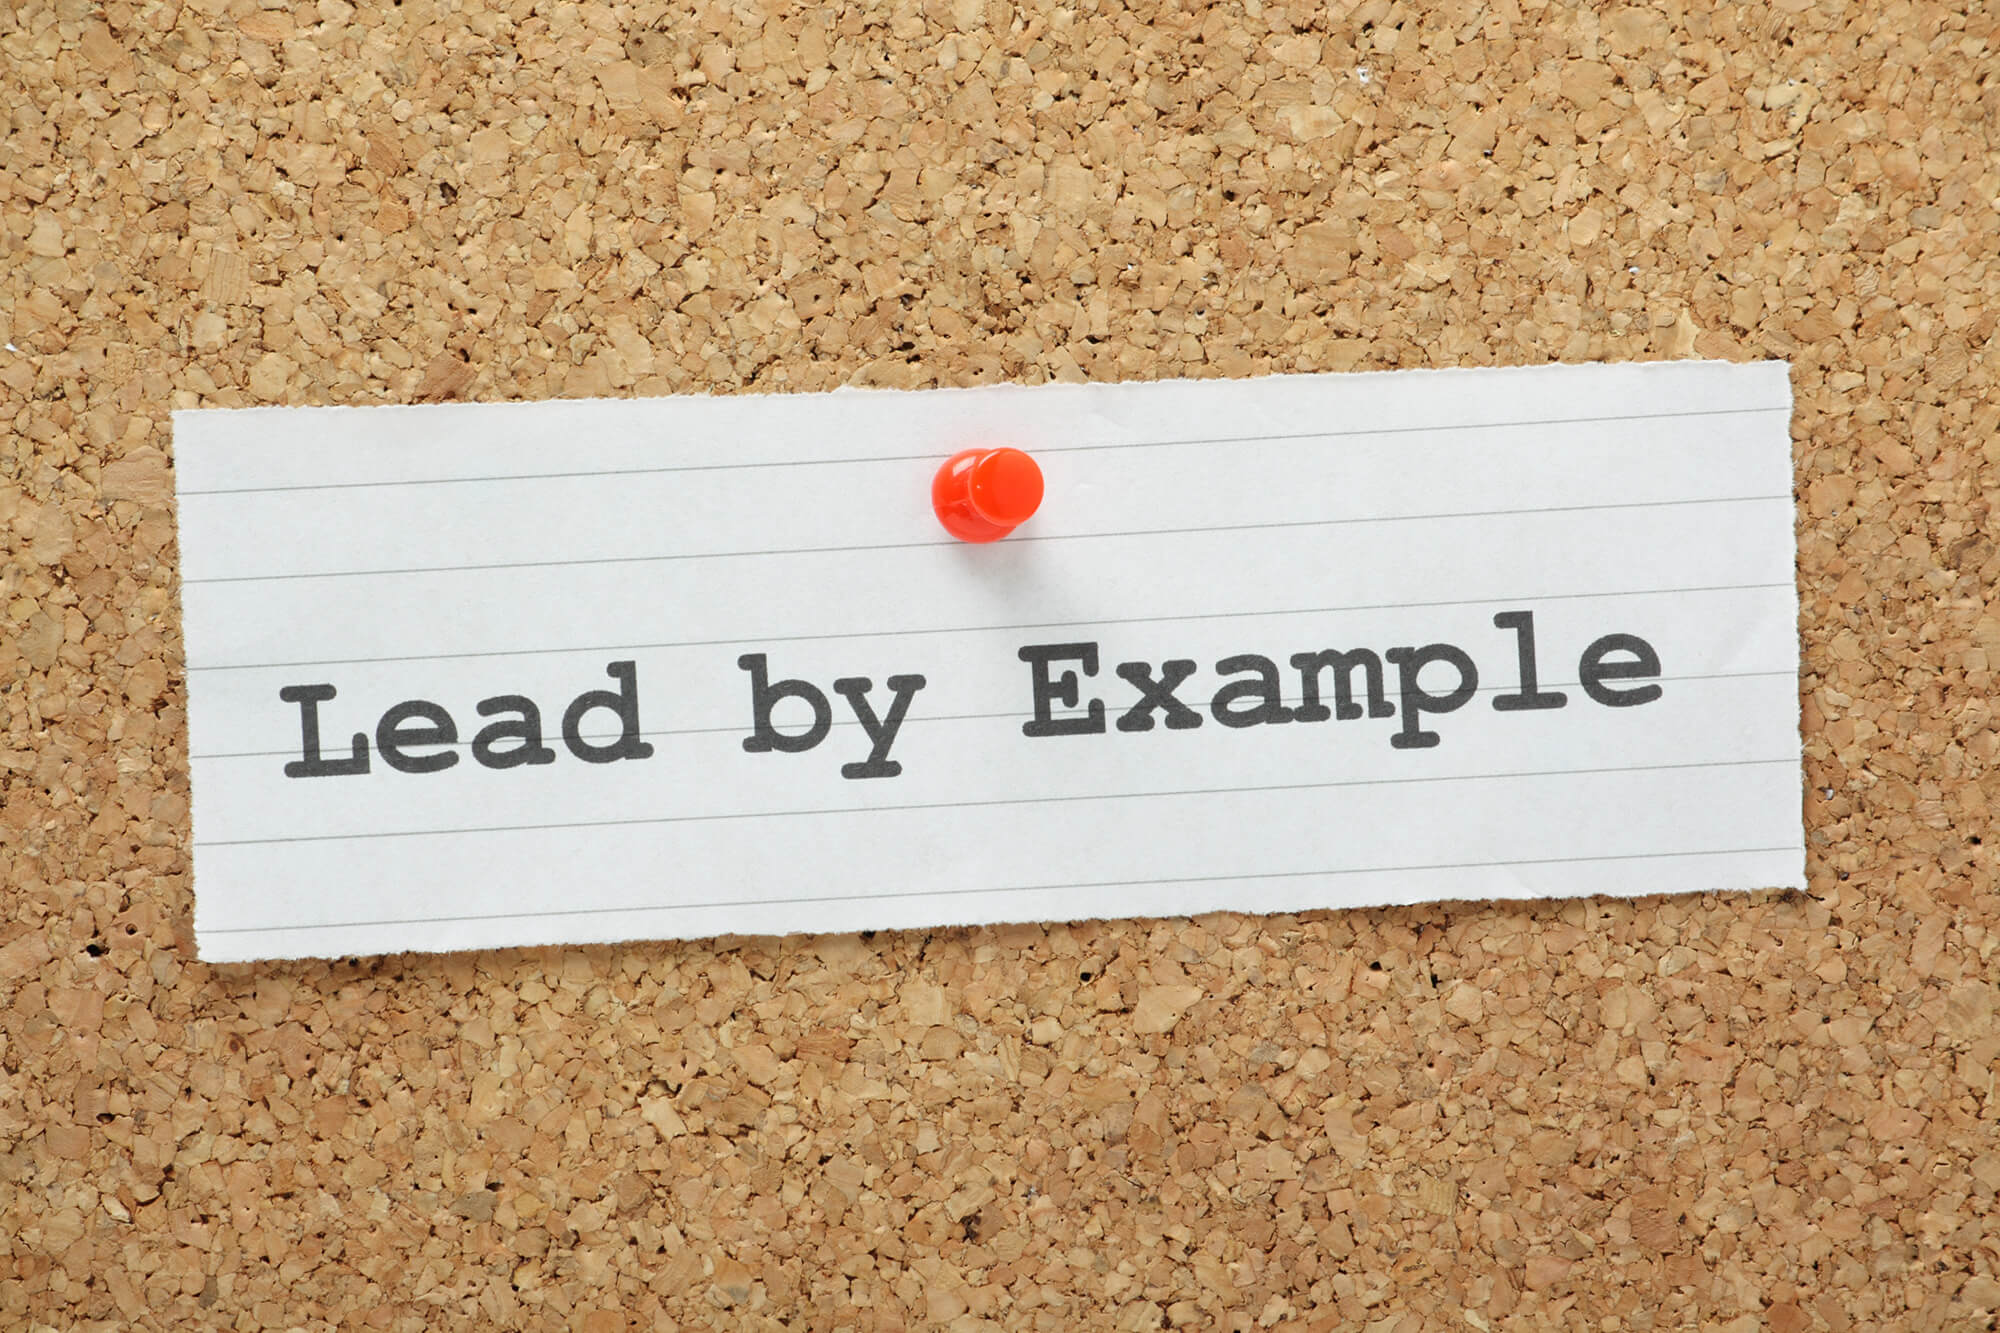 """lead by example"" written on a paper stamped against a wall"